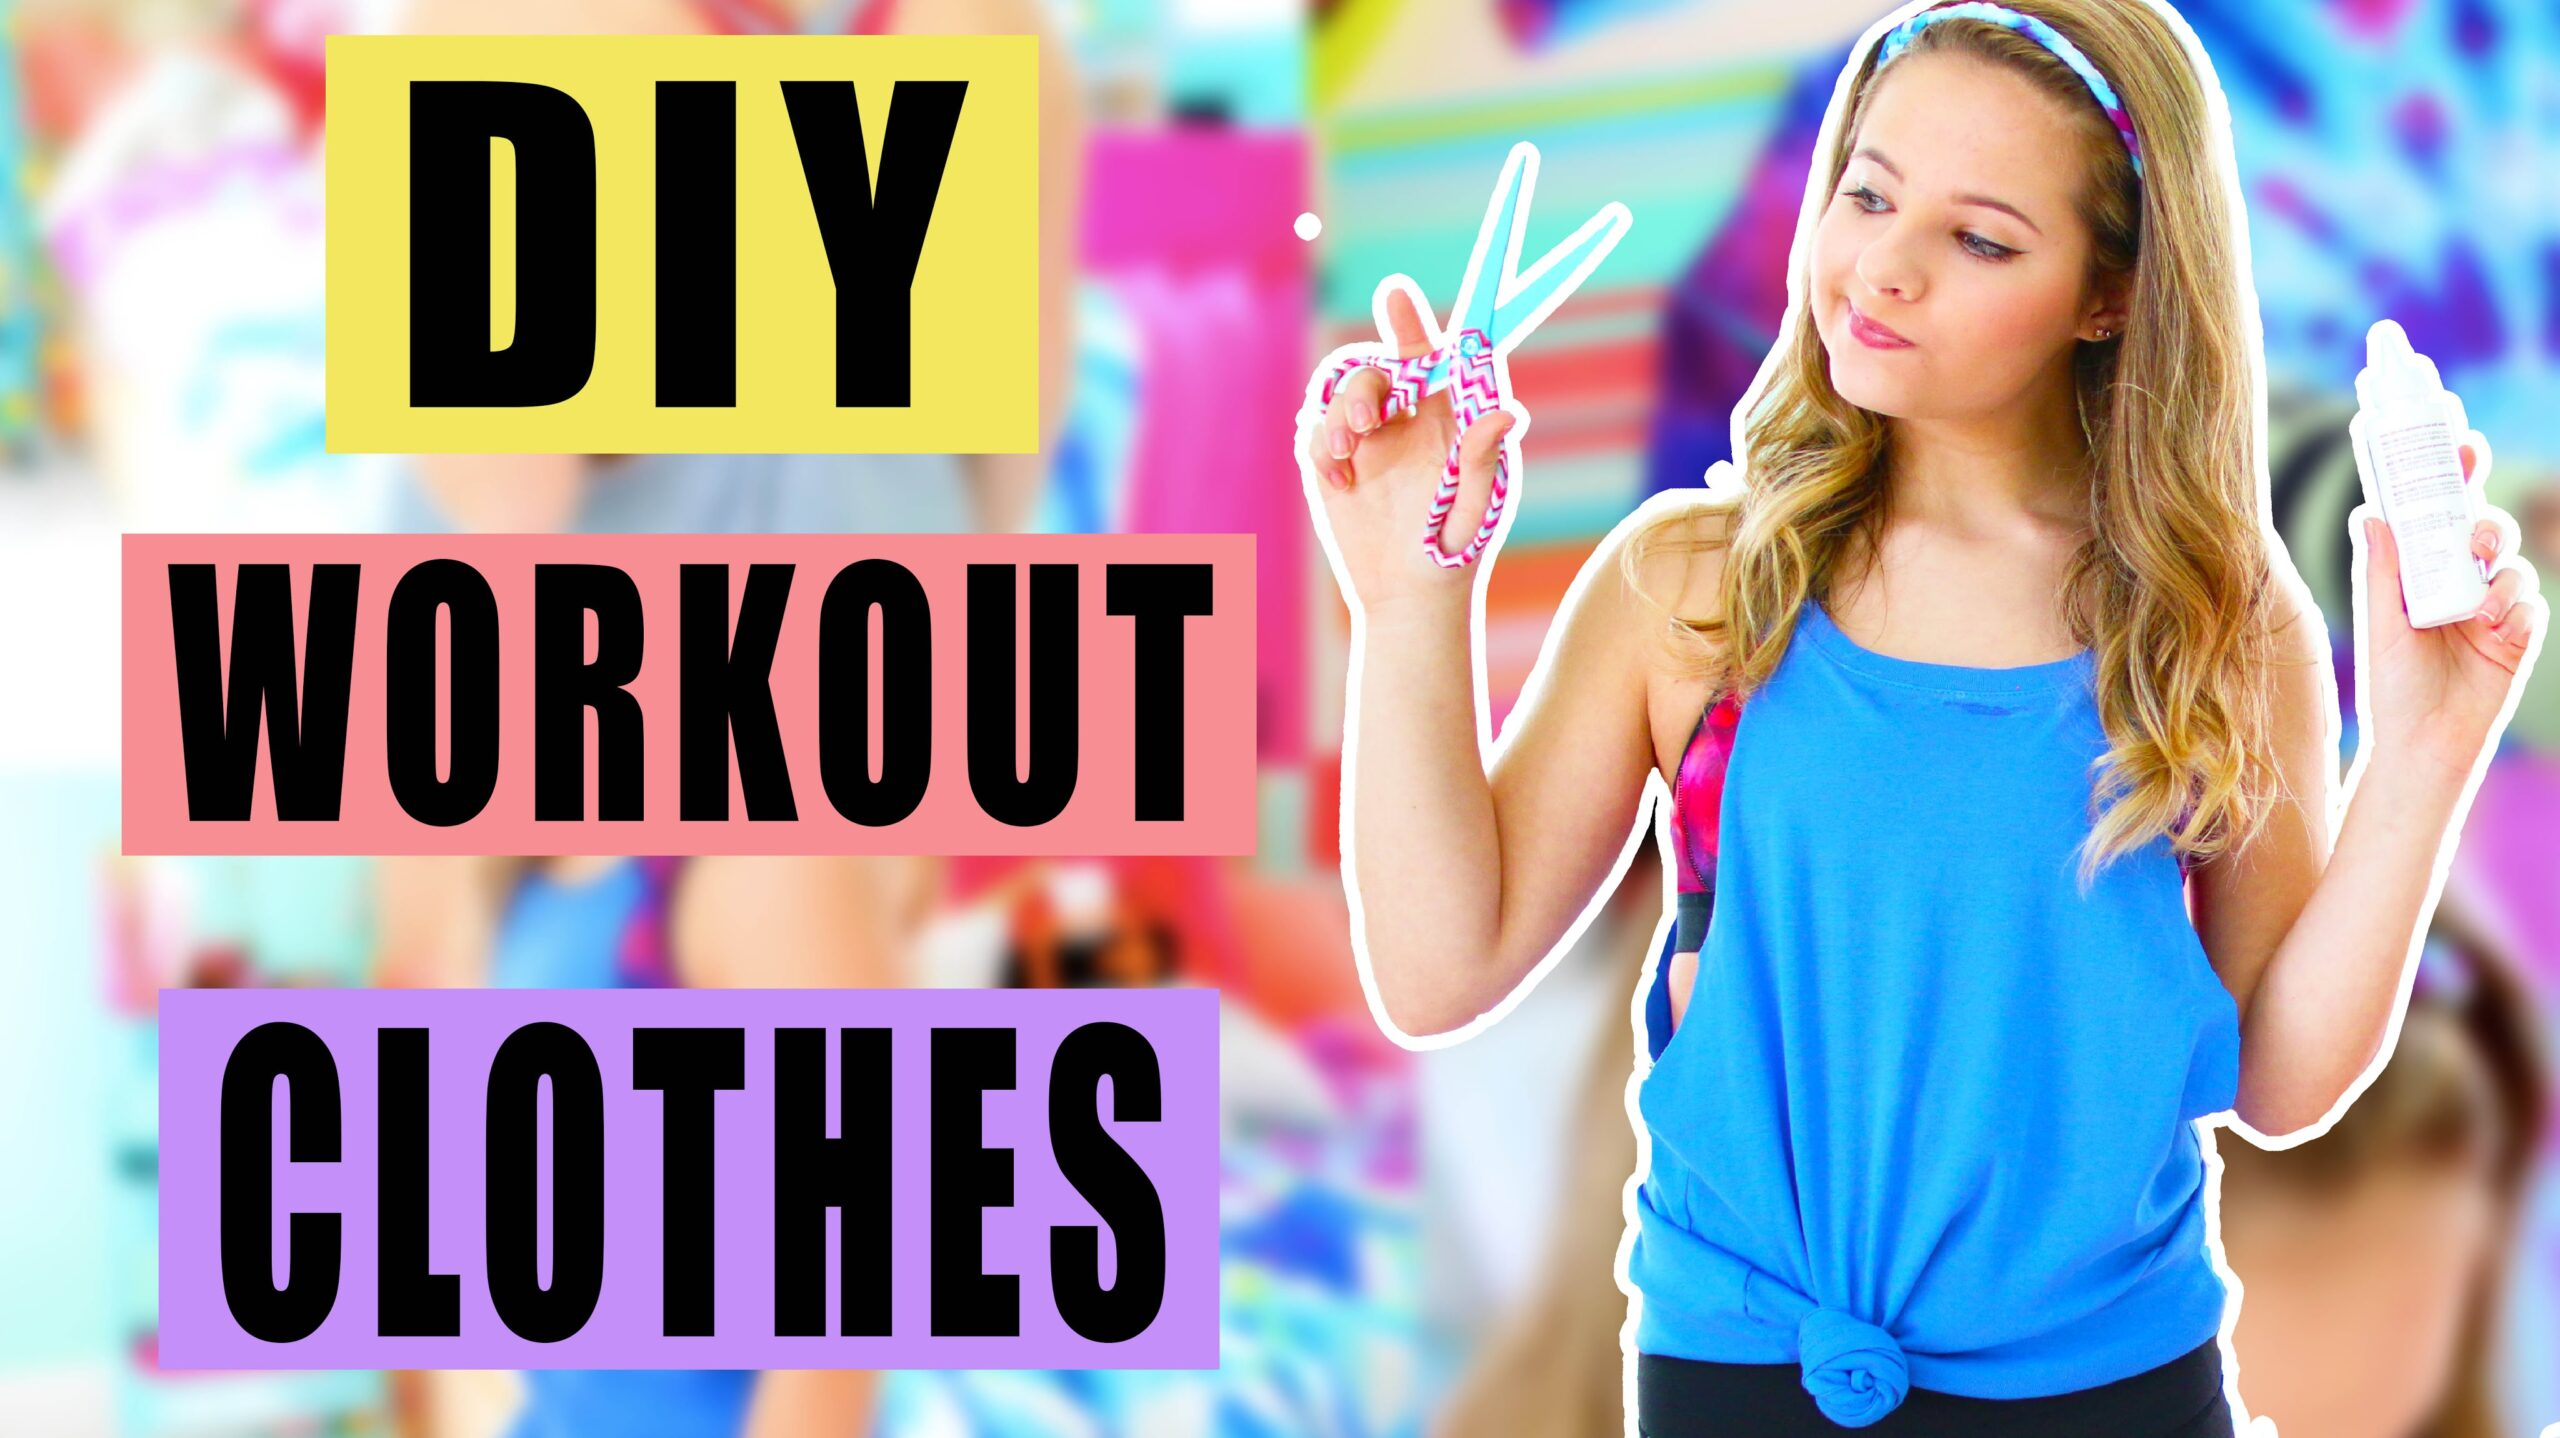 DIY Workout Clothes    Upcycle Your Old T-Shirts!